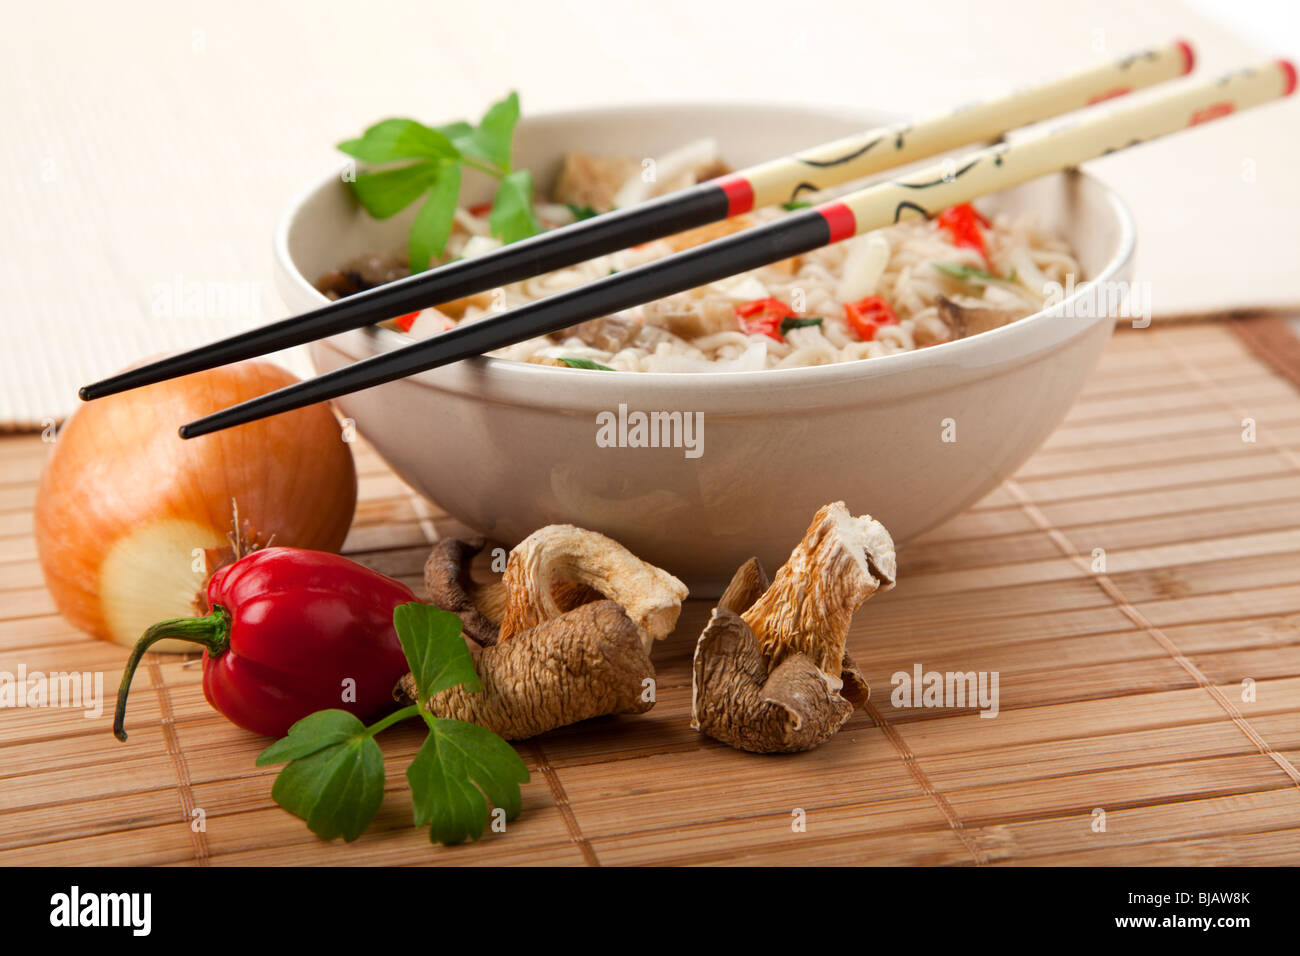 vegetarian ramen noodles dish, chopsticks at rest on bowl, ingredients in foreground - Stock Image